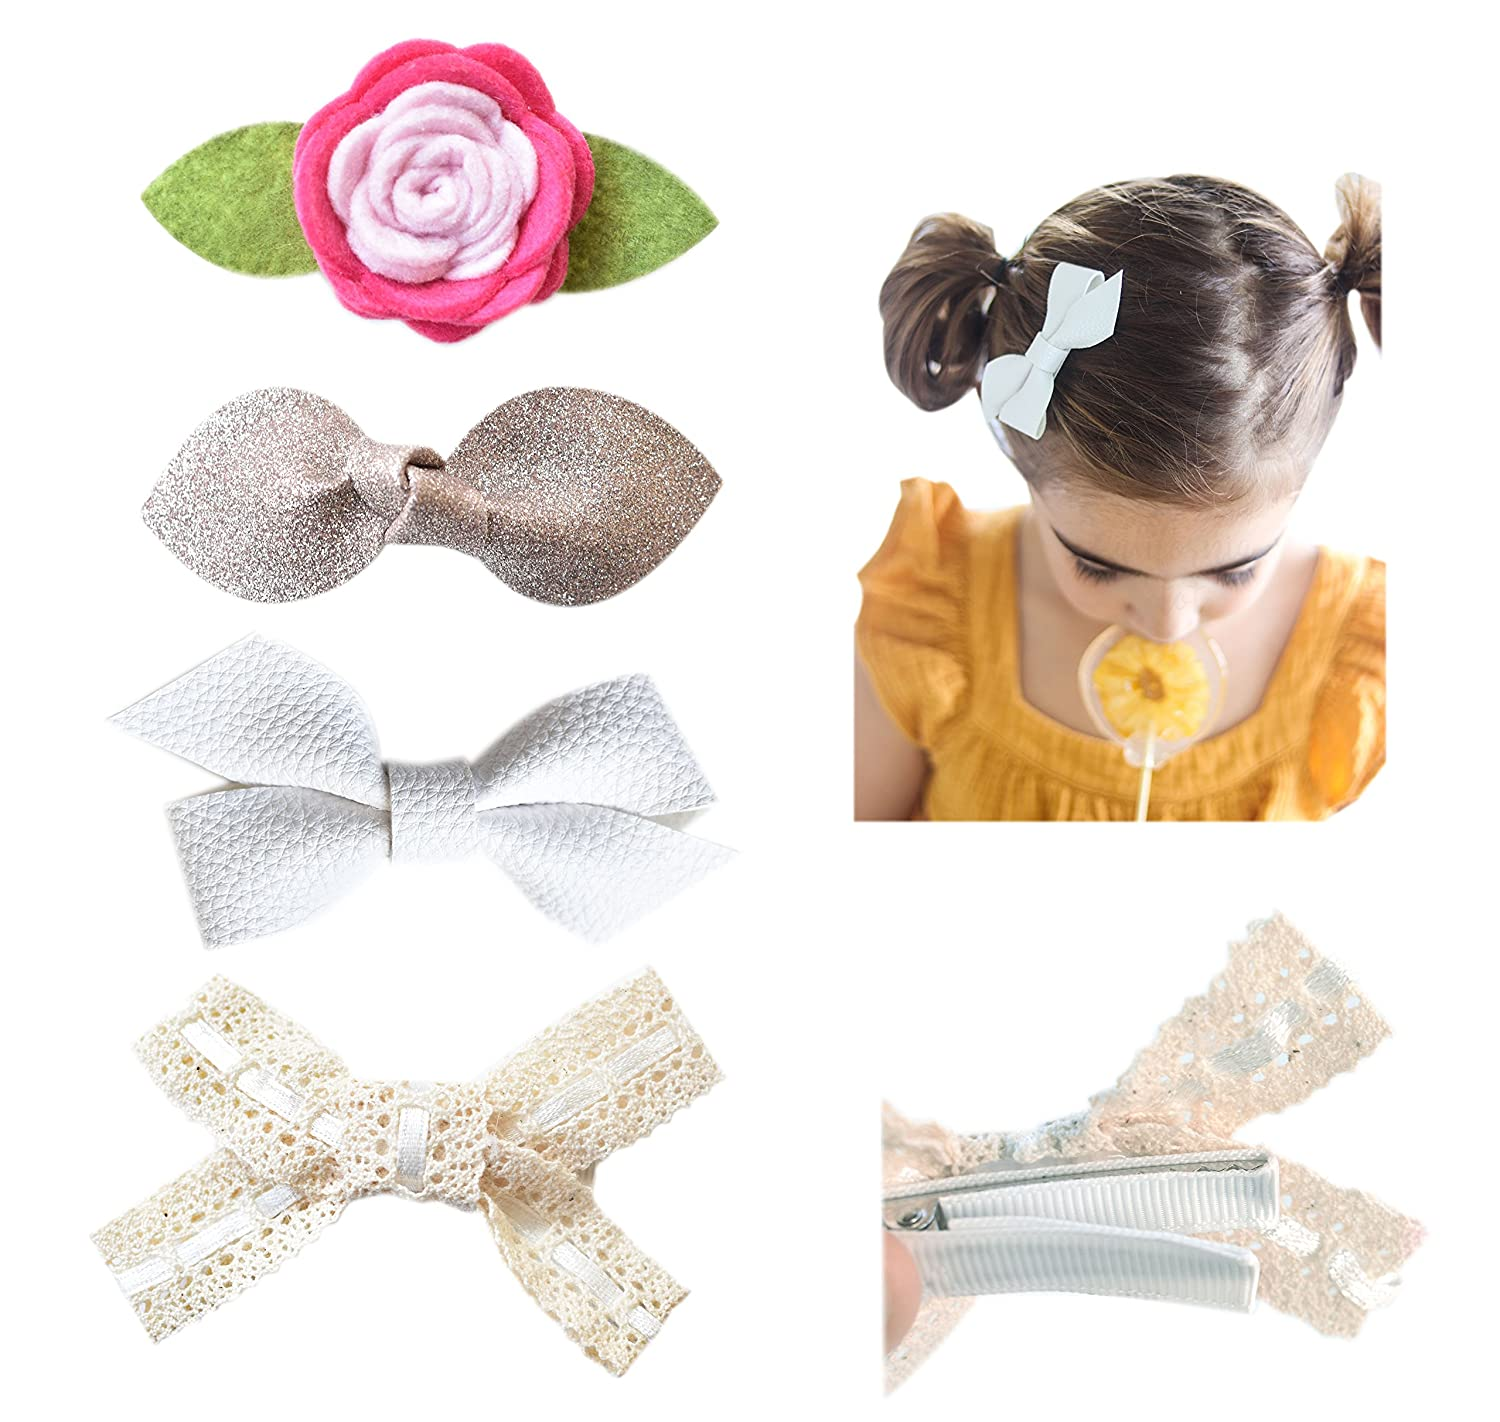 California Tot Baby Girl's Faux Leather Glitter and Lace Bow Hair Clips for Babies Toddlers One size fits all, Set of 4 (Boho Clip Set)